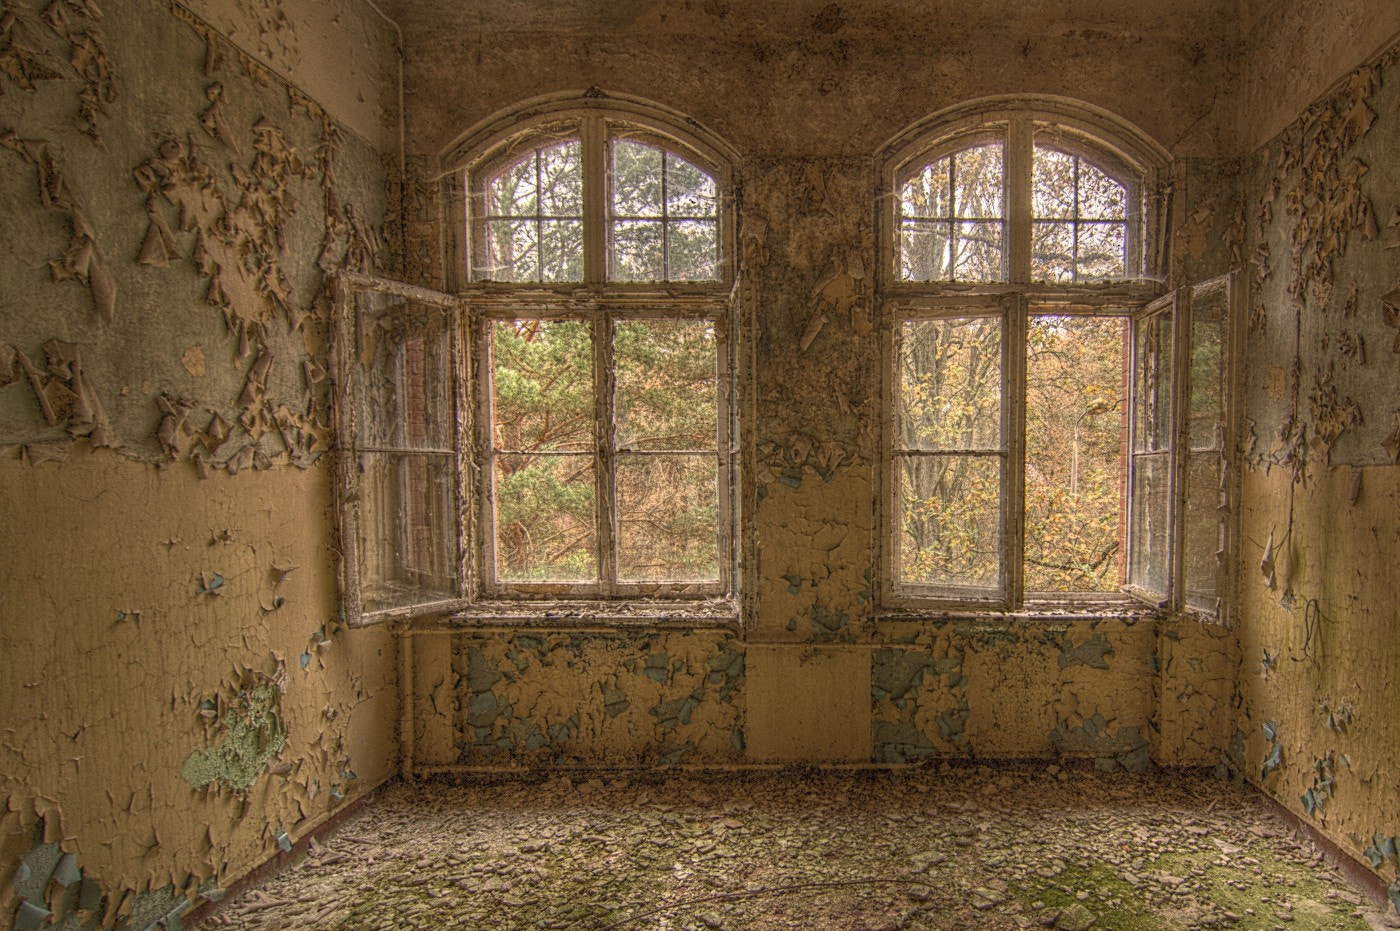 Photograph Fenster 7 by Michael Spahn on 500px